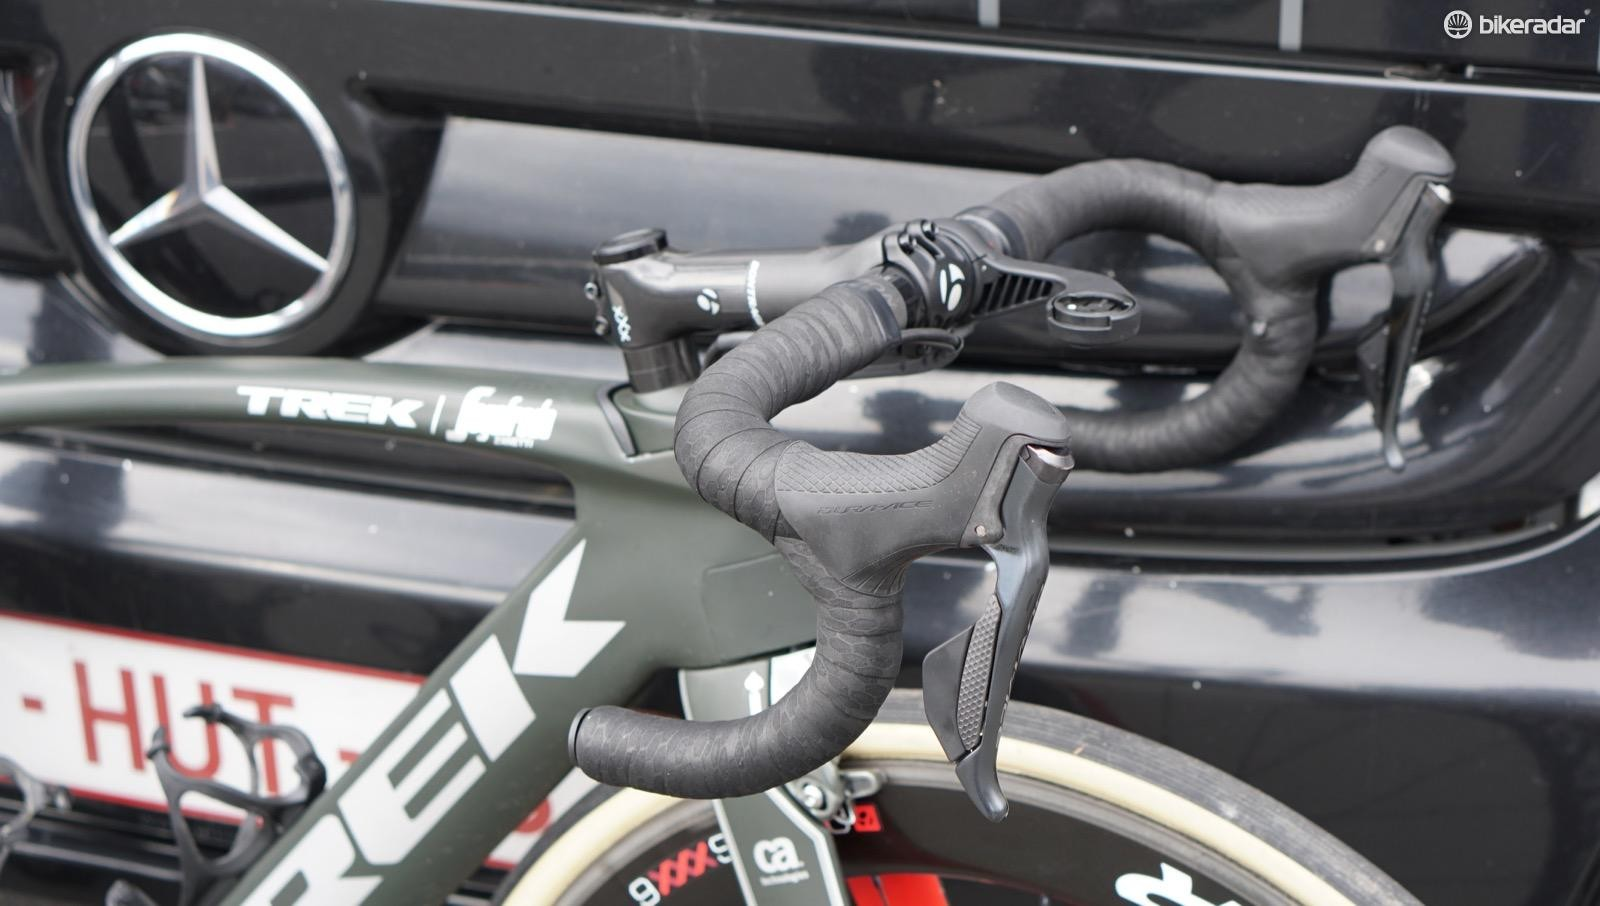 Instead of the integrated Madone bar/stem, Degenkolb and many of his teammates prefer the compliance and round-bar grip of an IsoCore bar for the cobbles